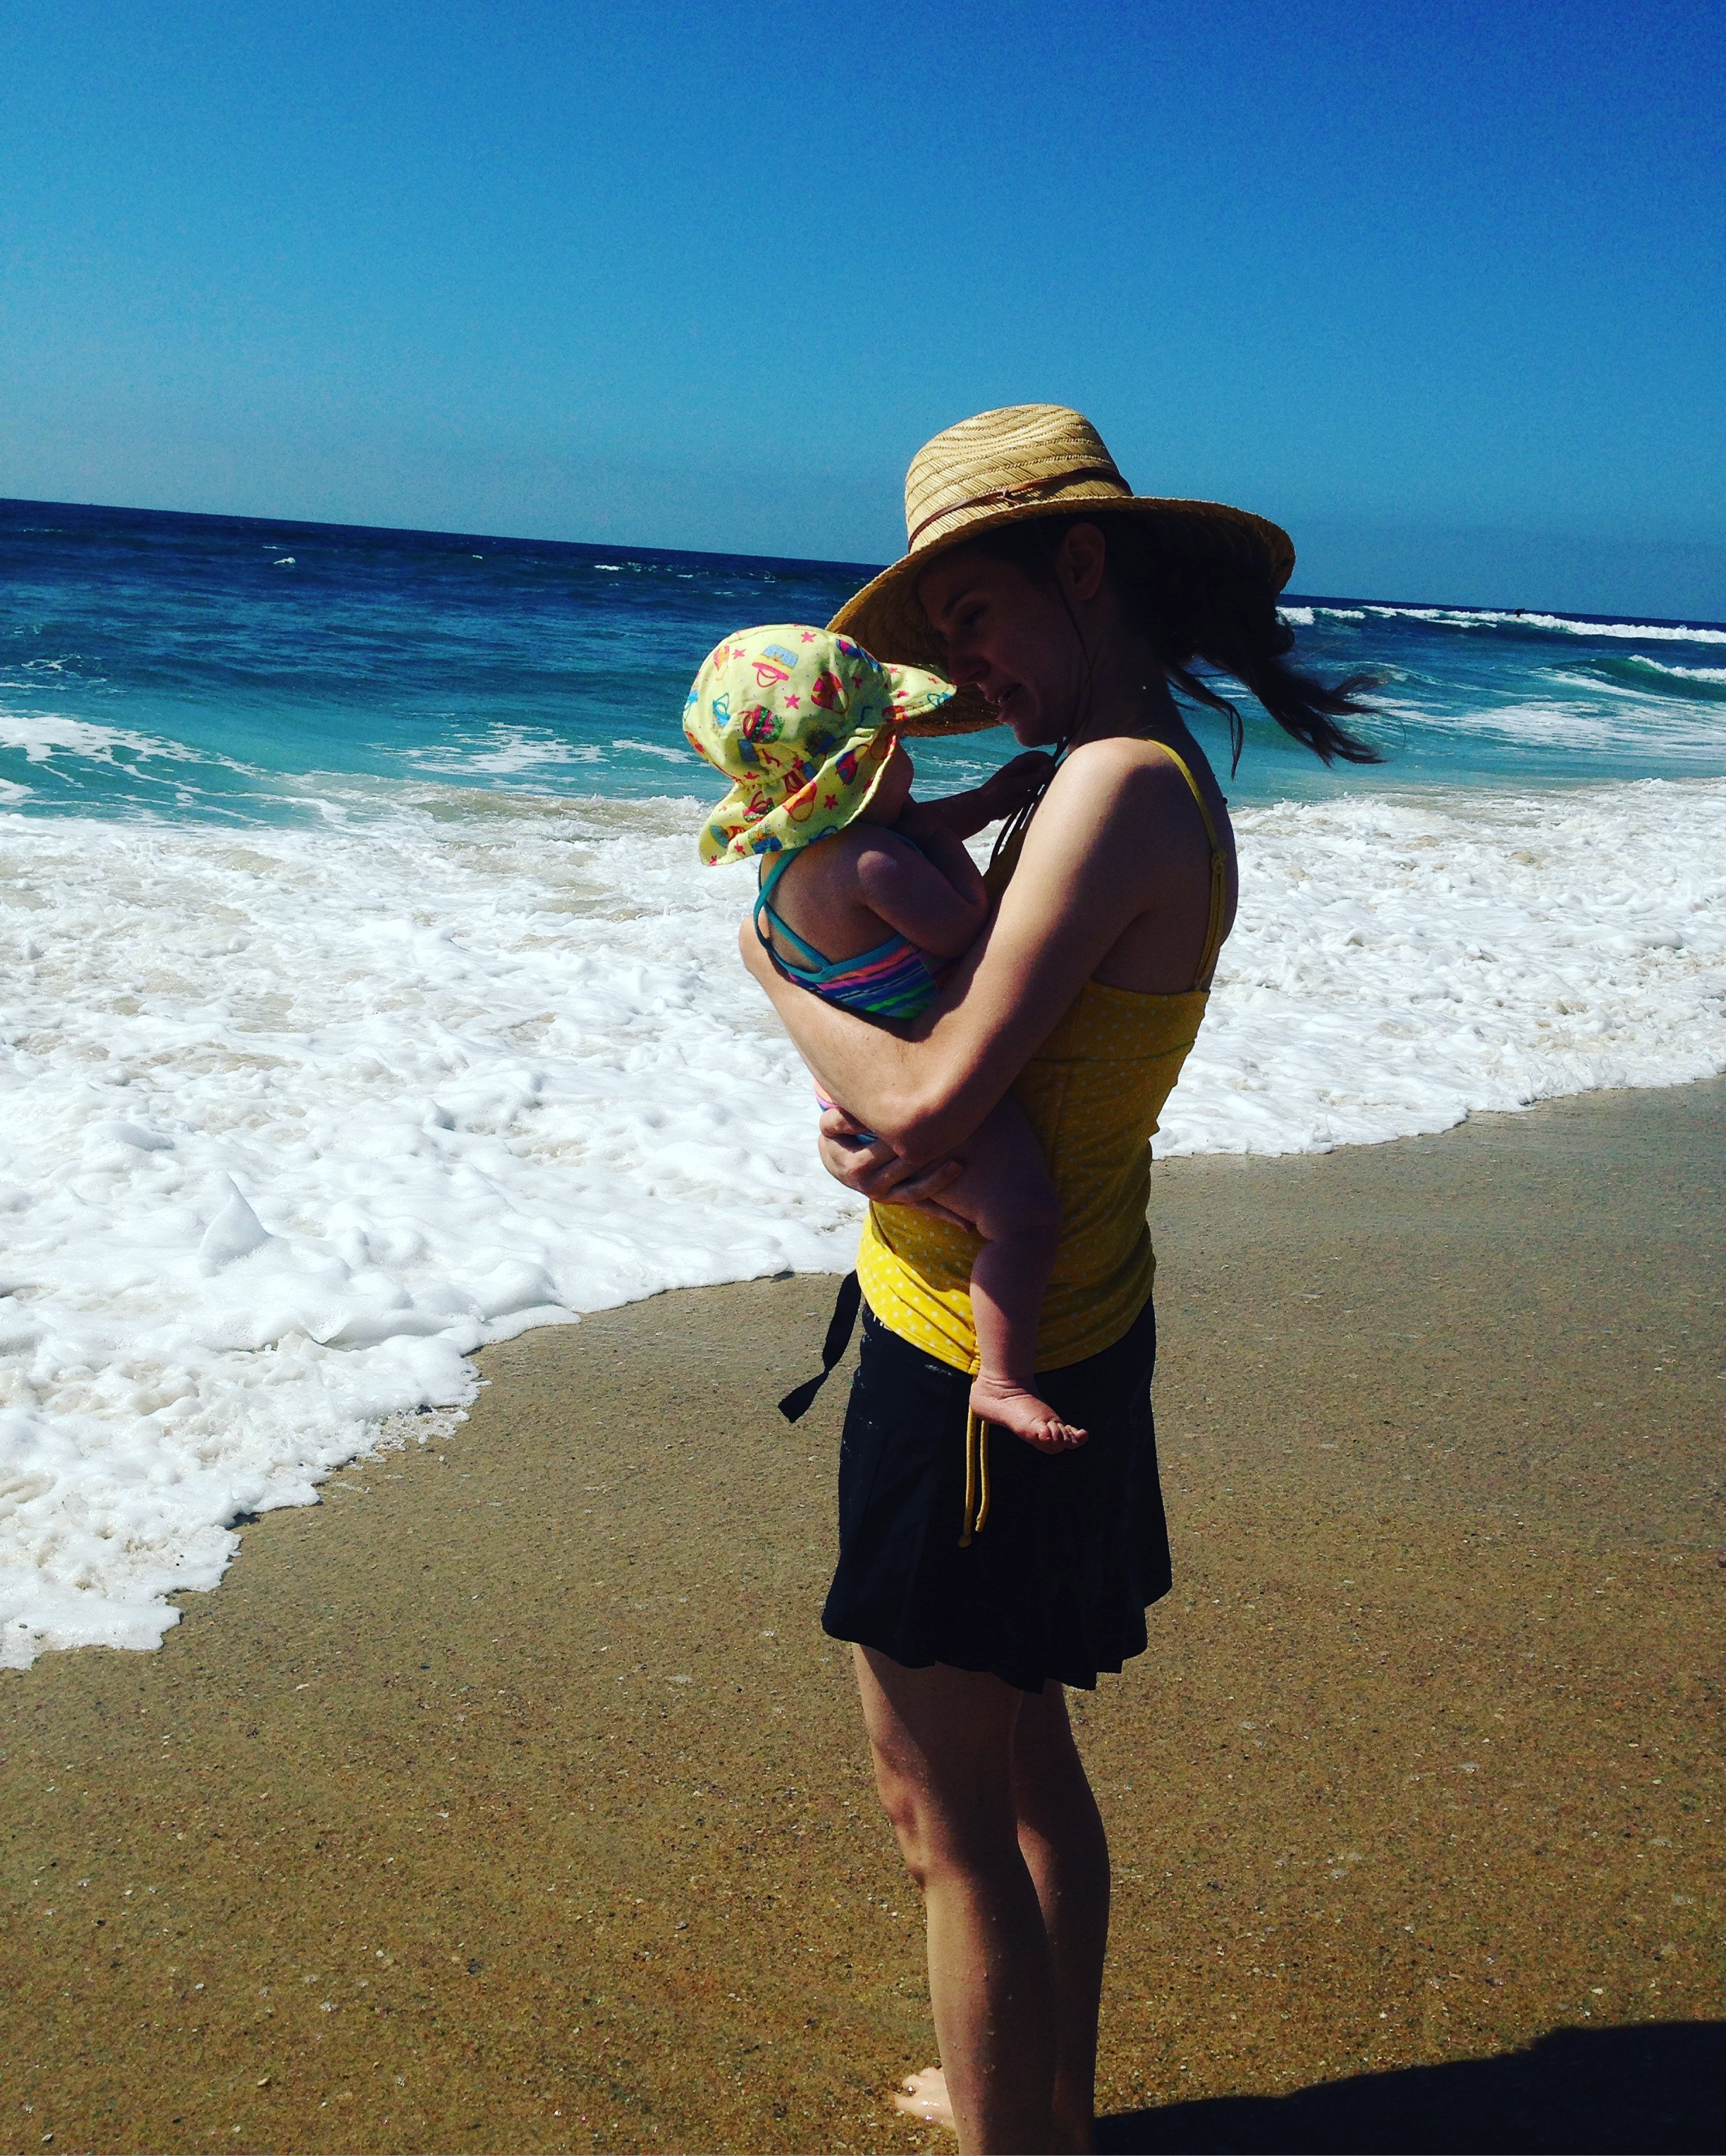 Babywoods and me on the beach in CA